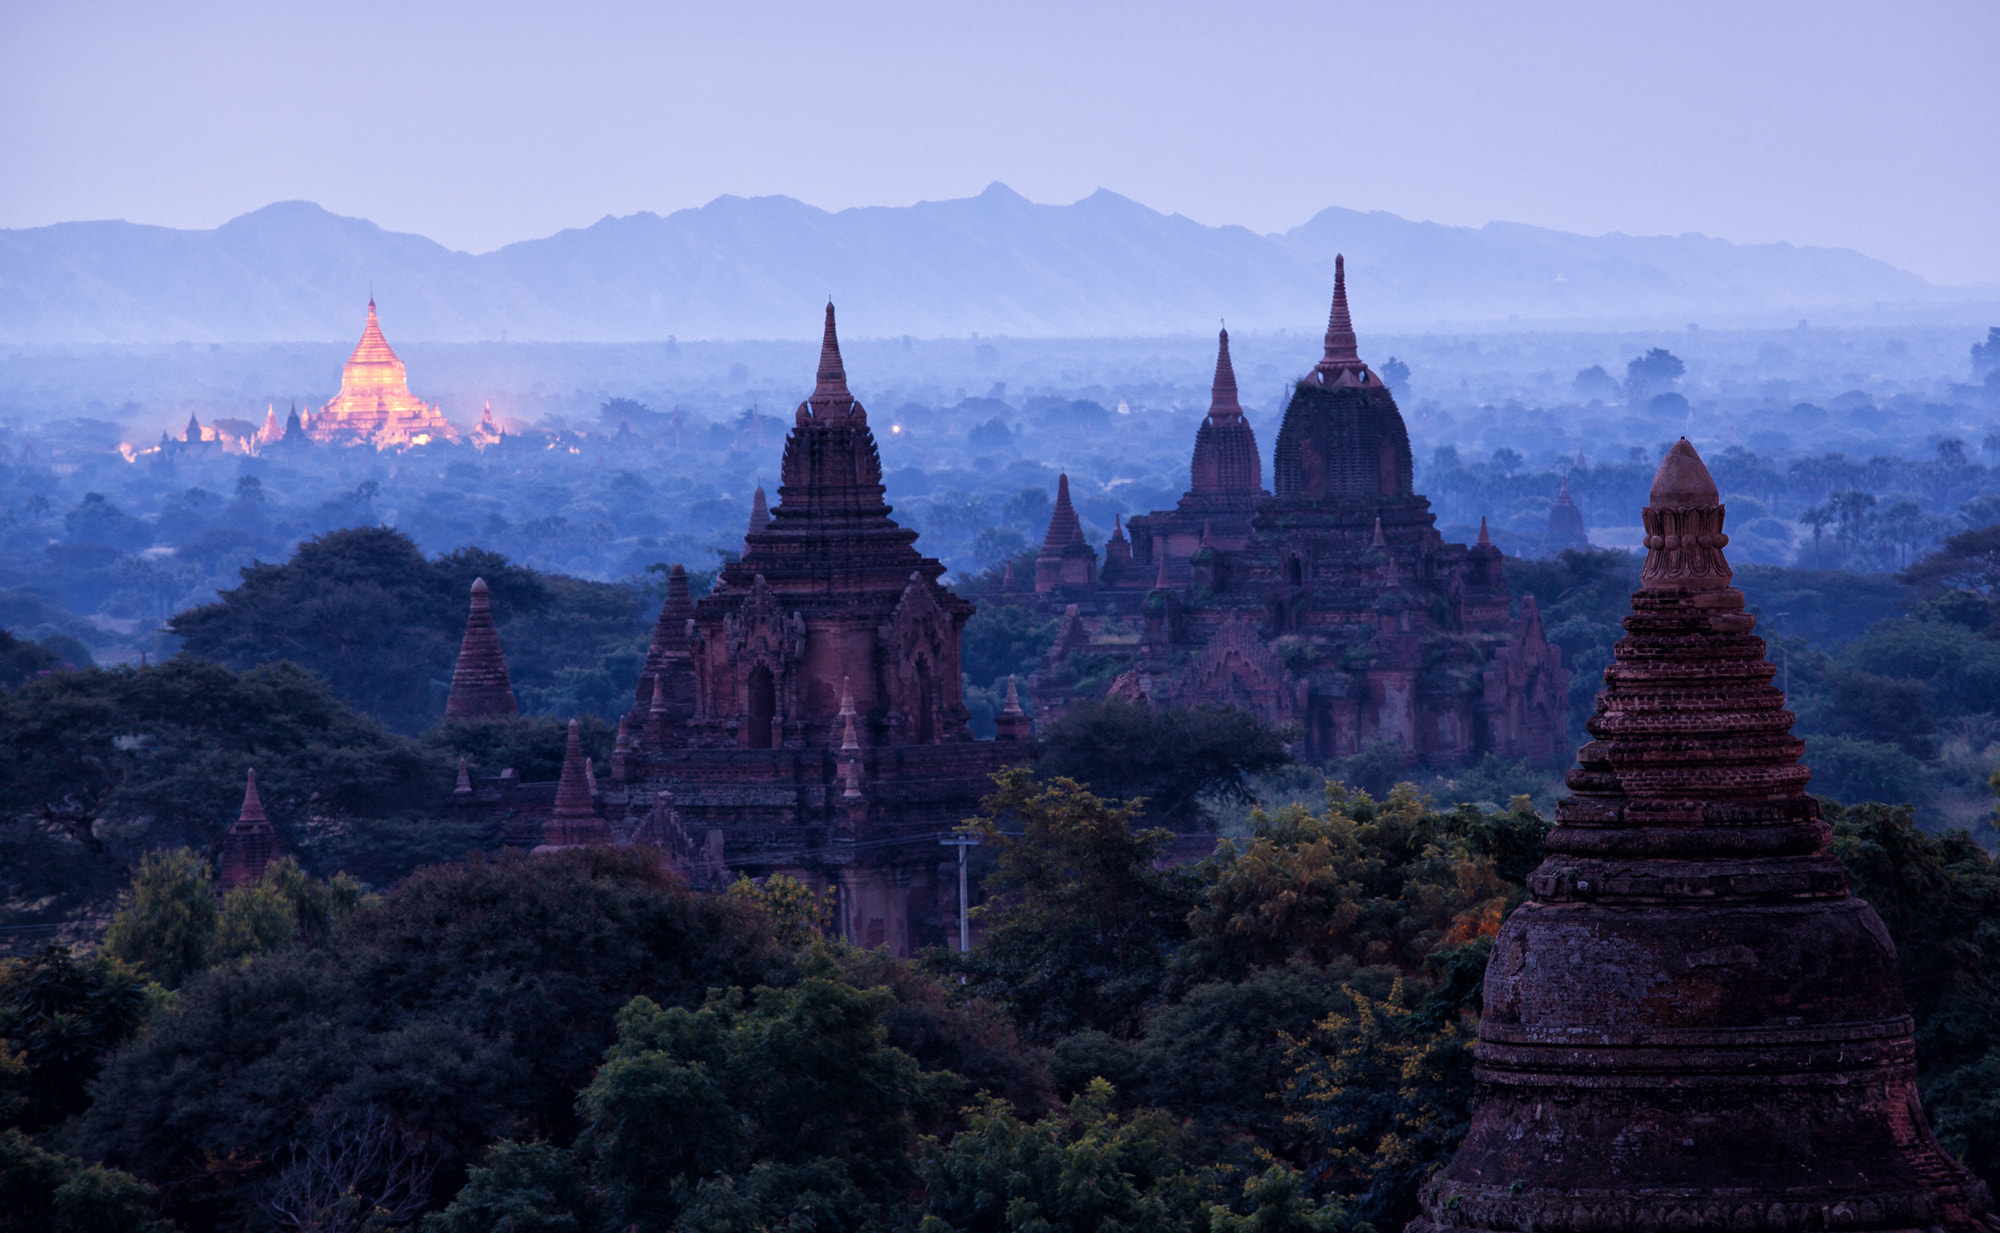 Photograph Morning in Bagan by Beate Dalbec on 500px